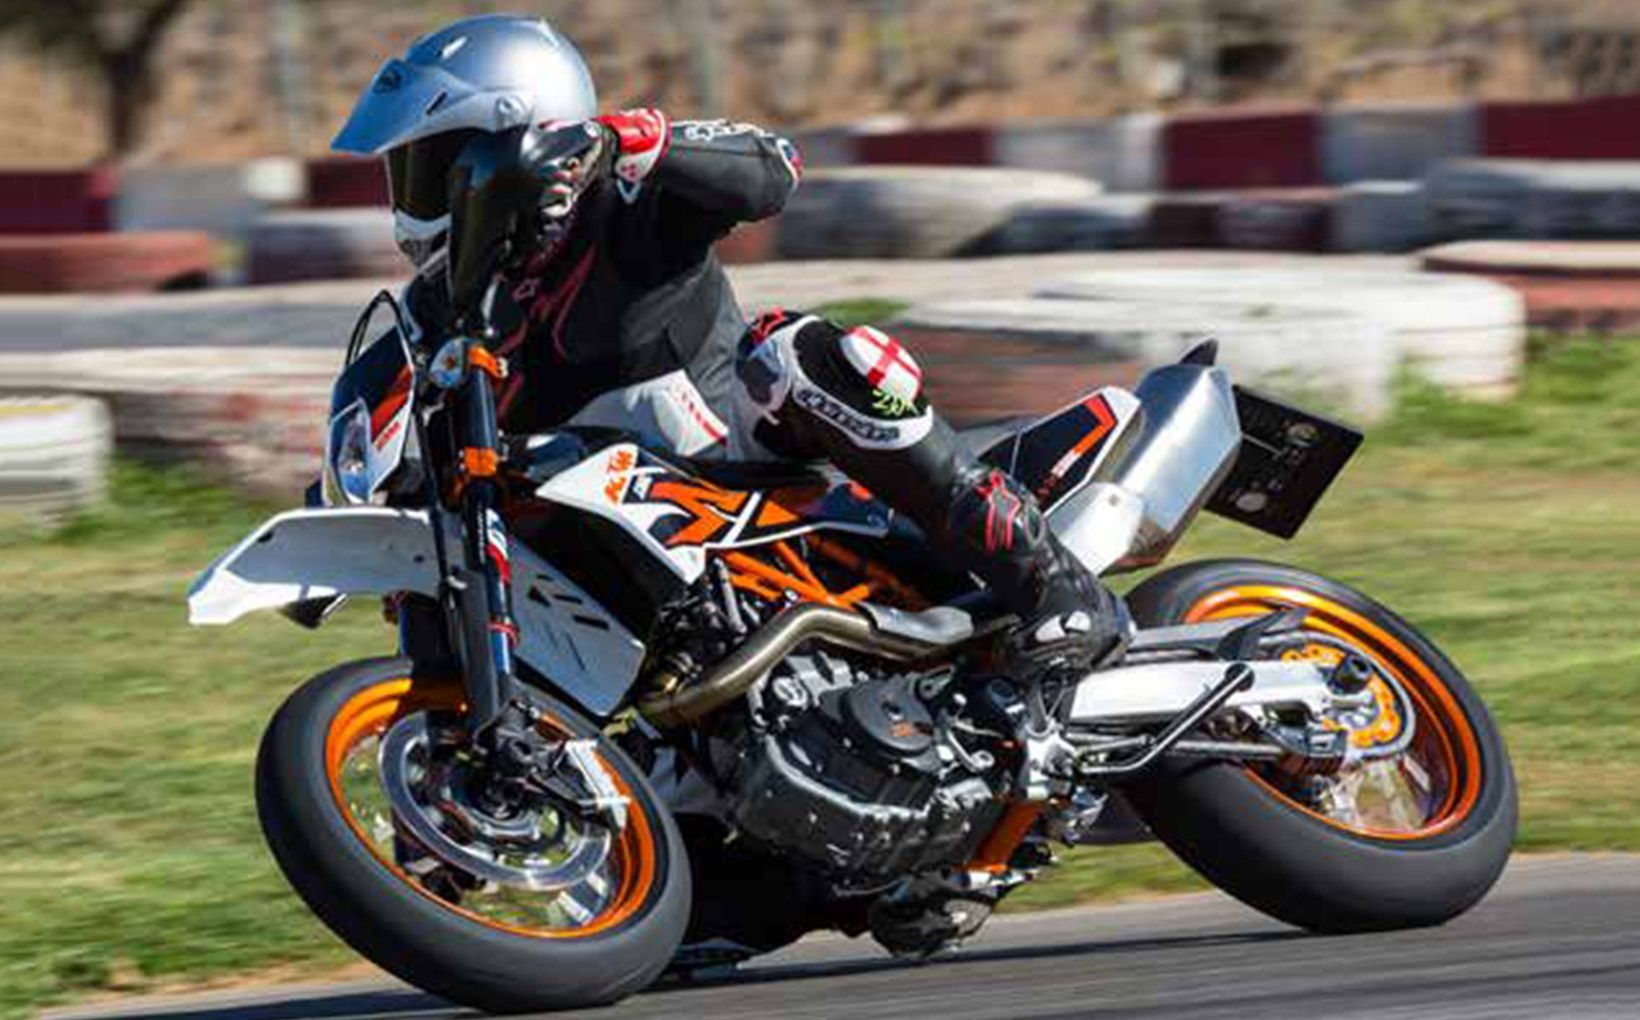 QUIKSPIN: KTM 690 SMC R - A Practical Supermoto? Surely Not… - Shannons Club